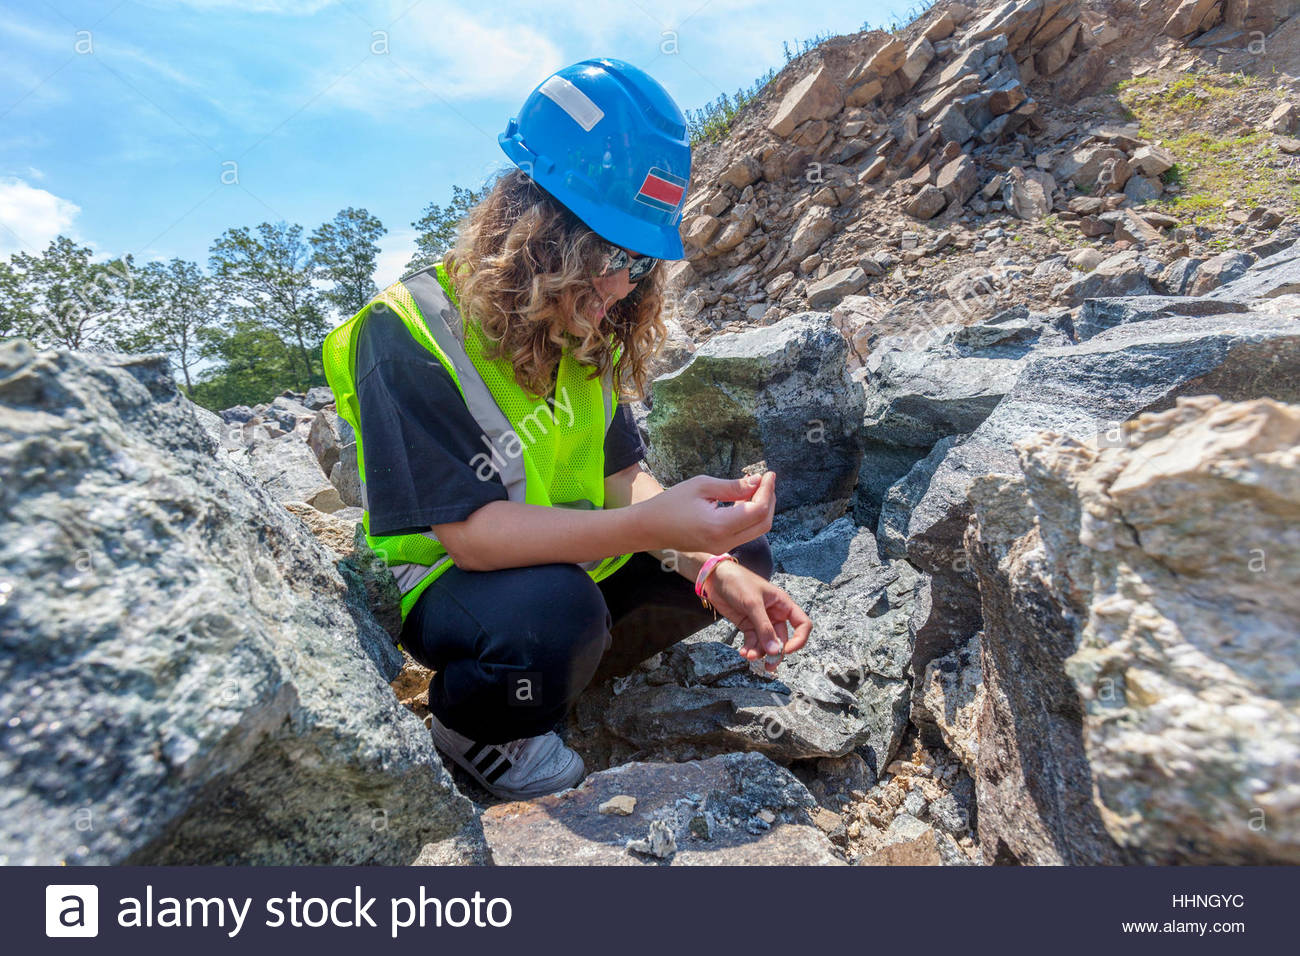 A geology science student studying rocks. - Stock Image